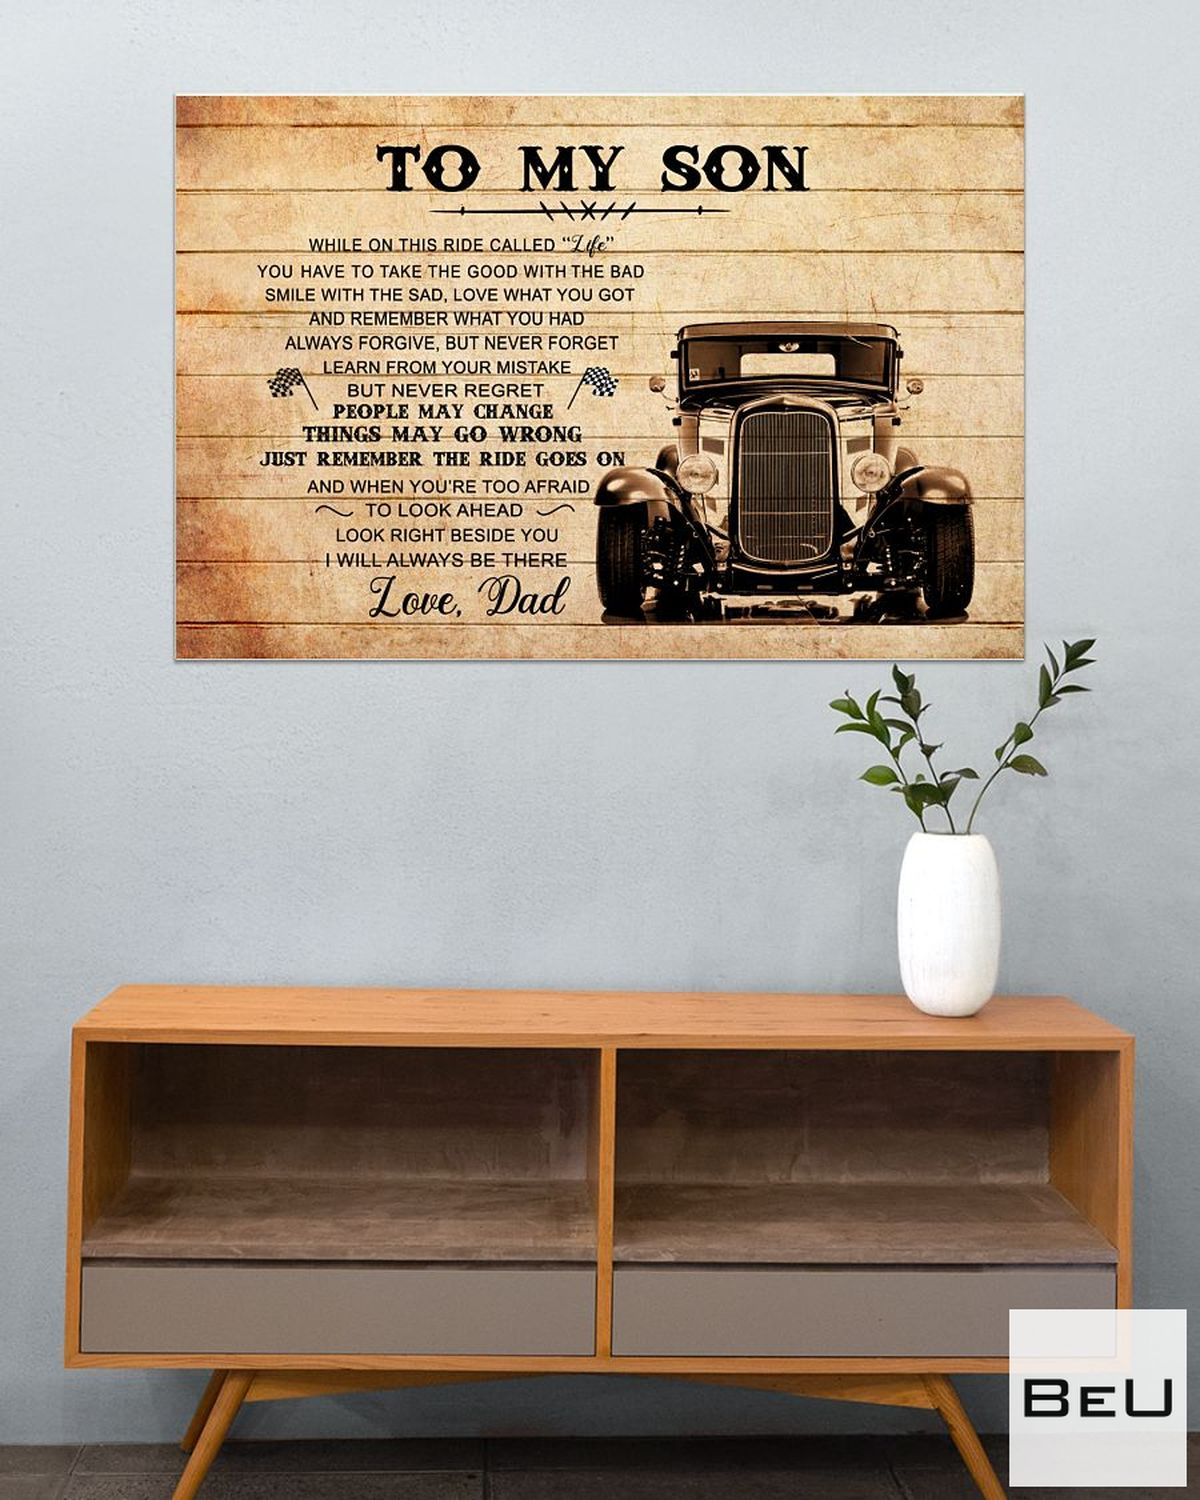 To My Son Love Dad Truck Driver Poster c